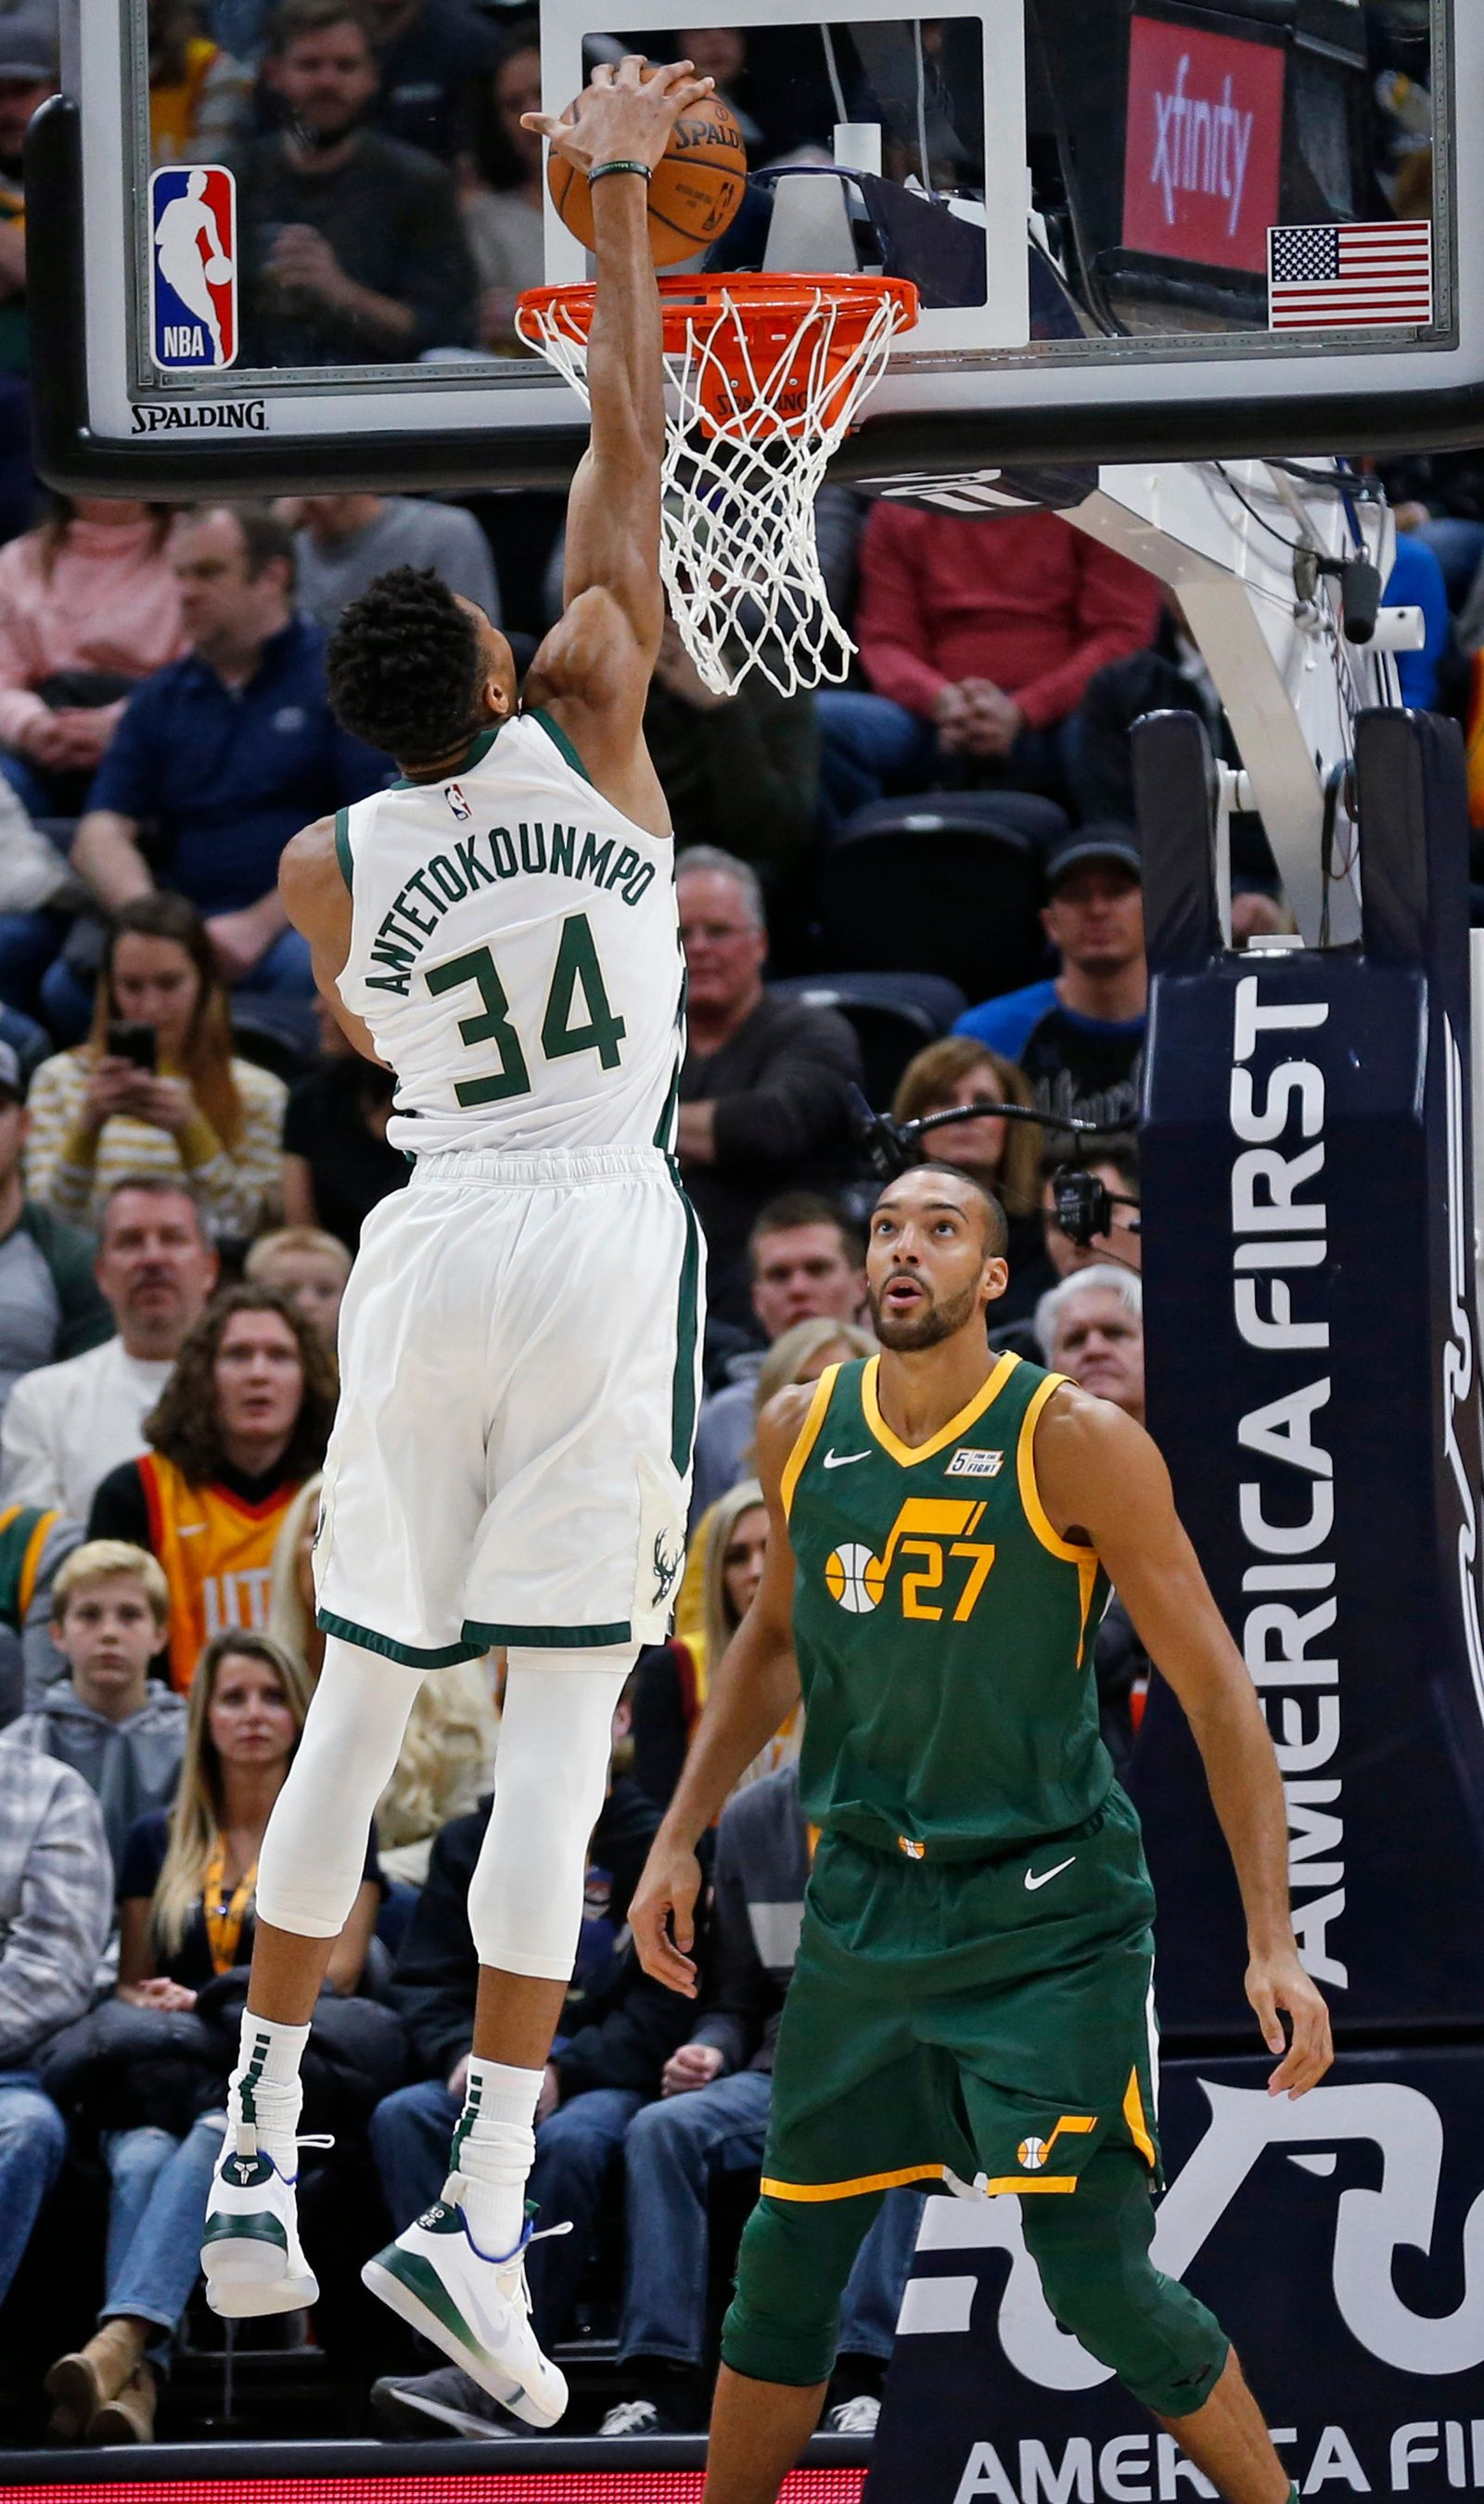 Milwaukee Bucks forward Giannis Antetokounmpo (34) dunks in front of Utah Jazz center Rudy Gobert (27) during the first half during an NBA basketball game Saturday, March 2, 2019, in Salt Lake City. (AP Photo/Rick Bowmer)